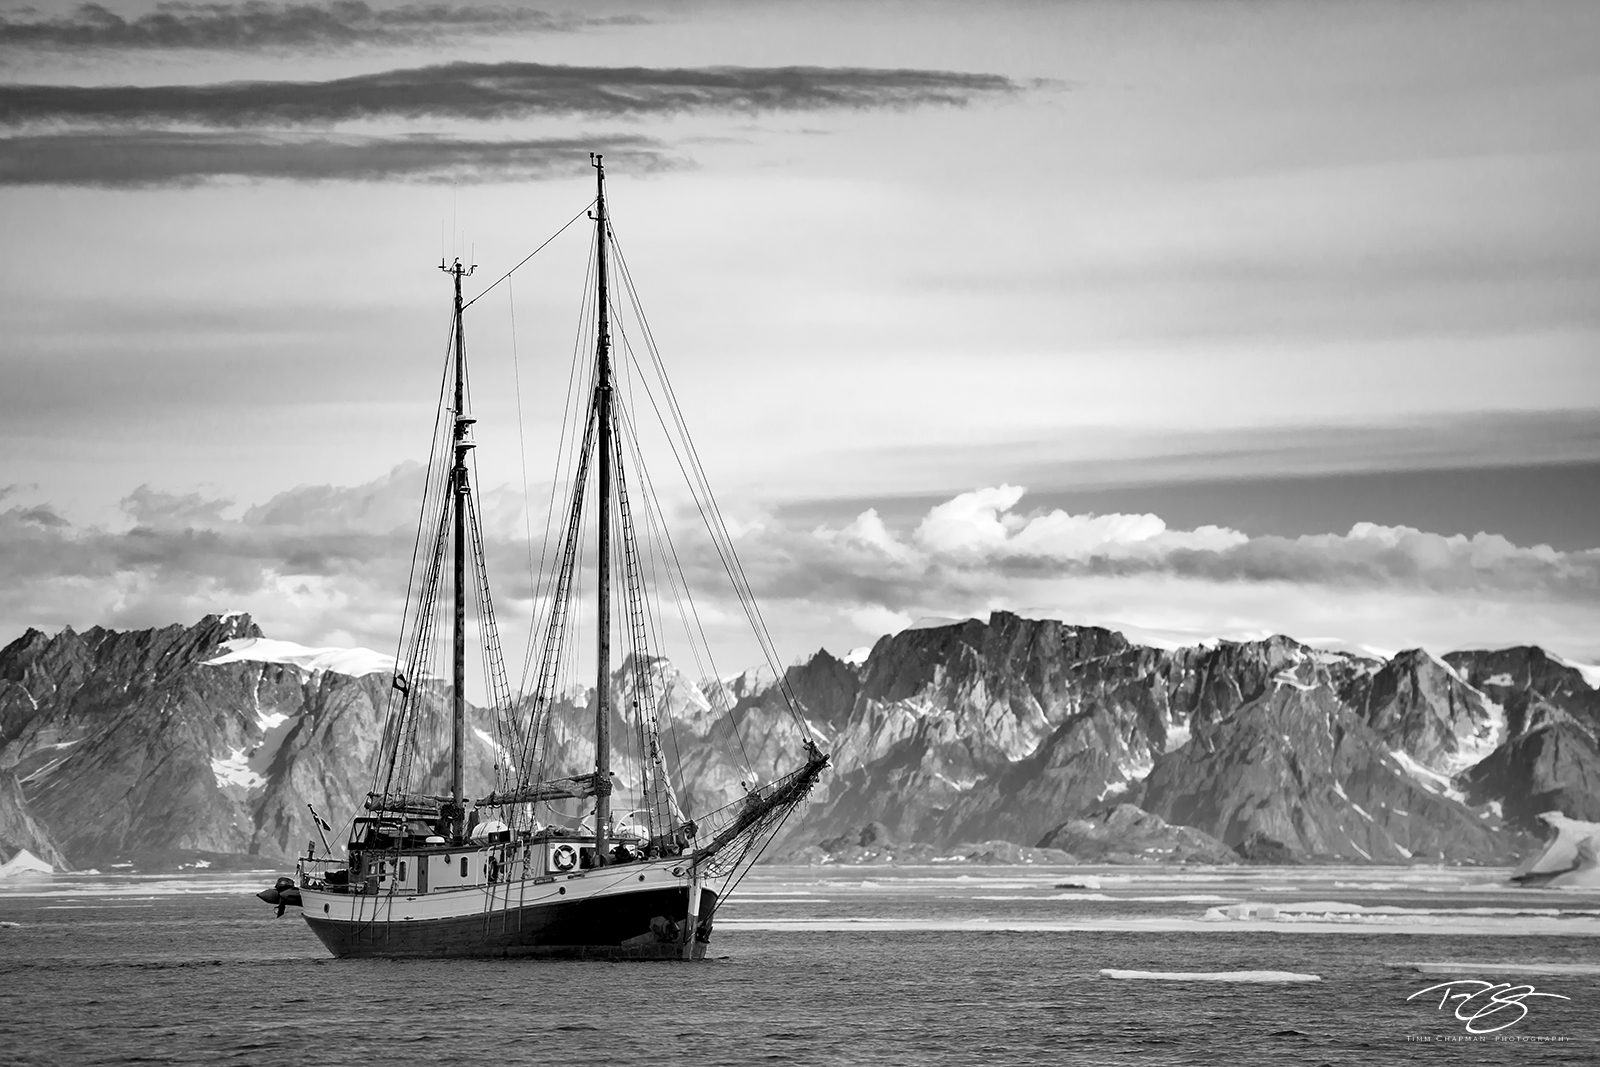 ice; iceberg, donna wood, sailboat, fishing vessel, ship, schooner, explorer, rugged, landscape, mountains, black & white, monochrome